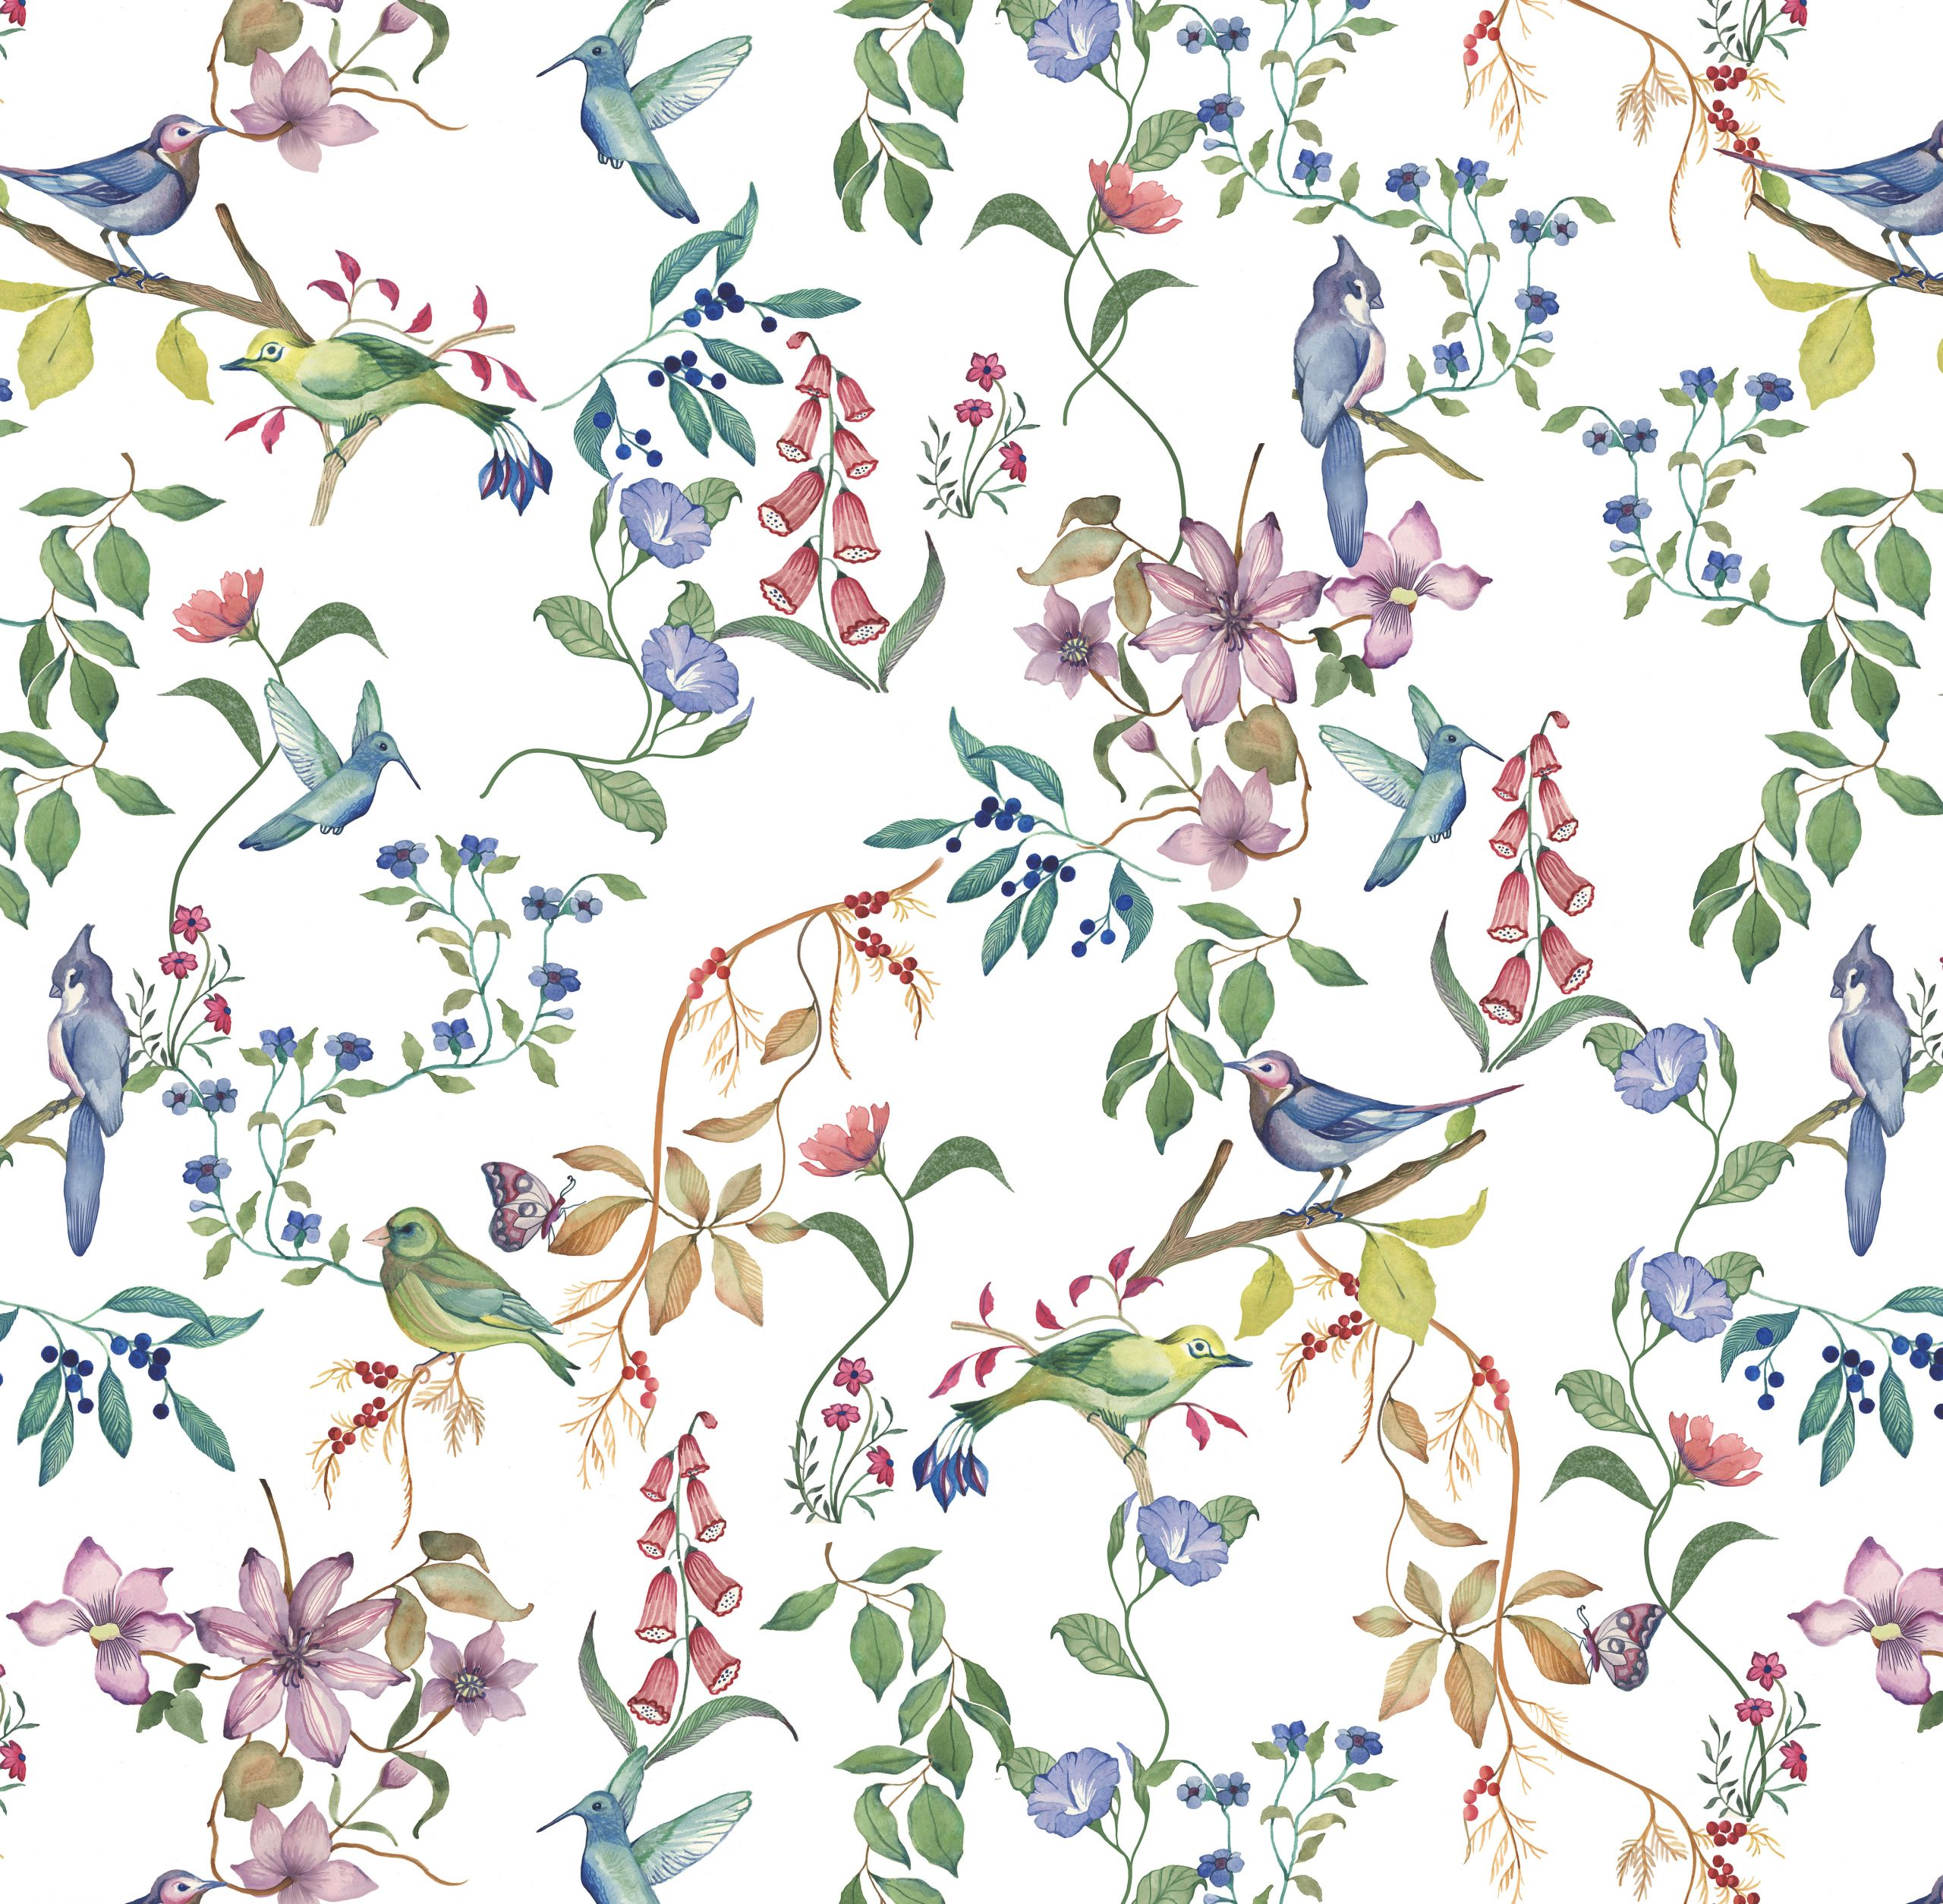 floral bird print wallpaper fabric